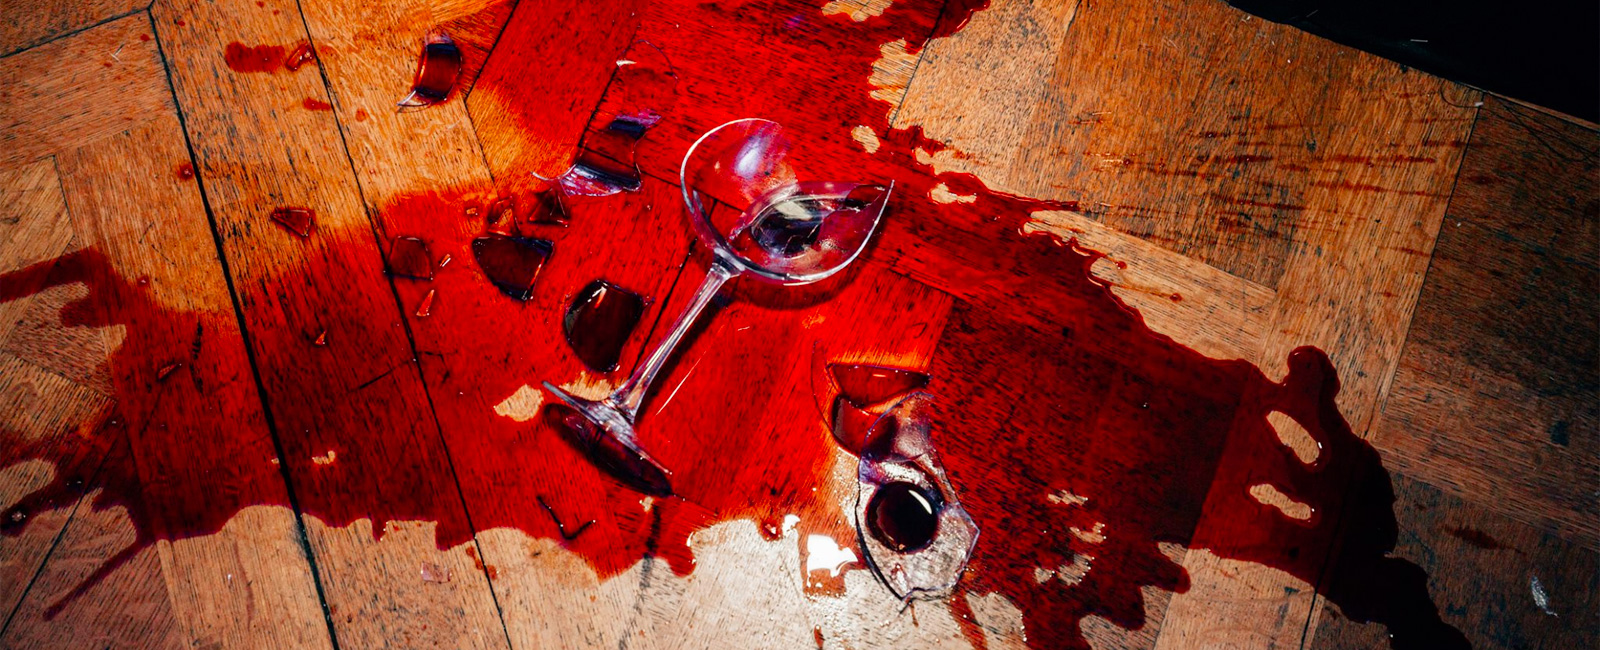 spilled red wine on floor with broke glass